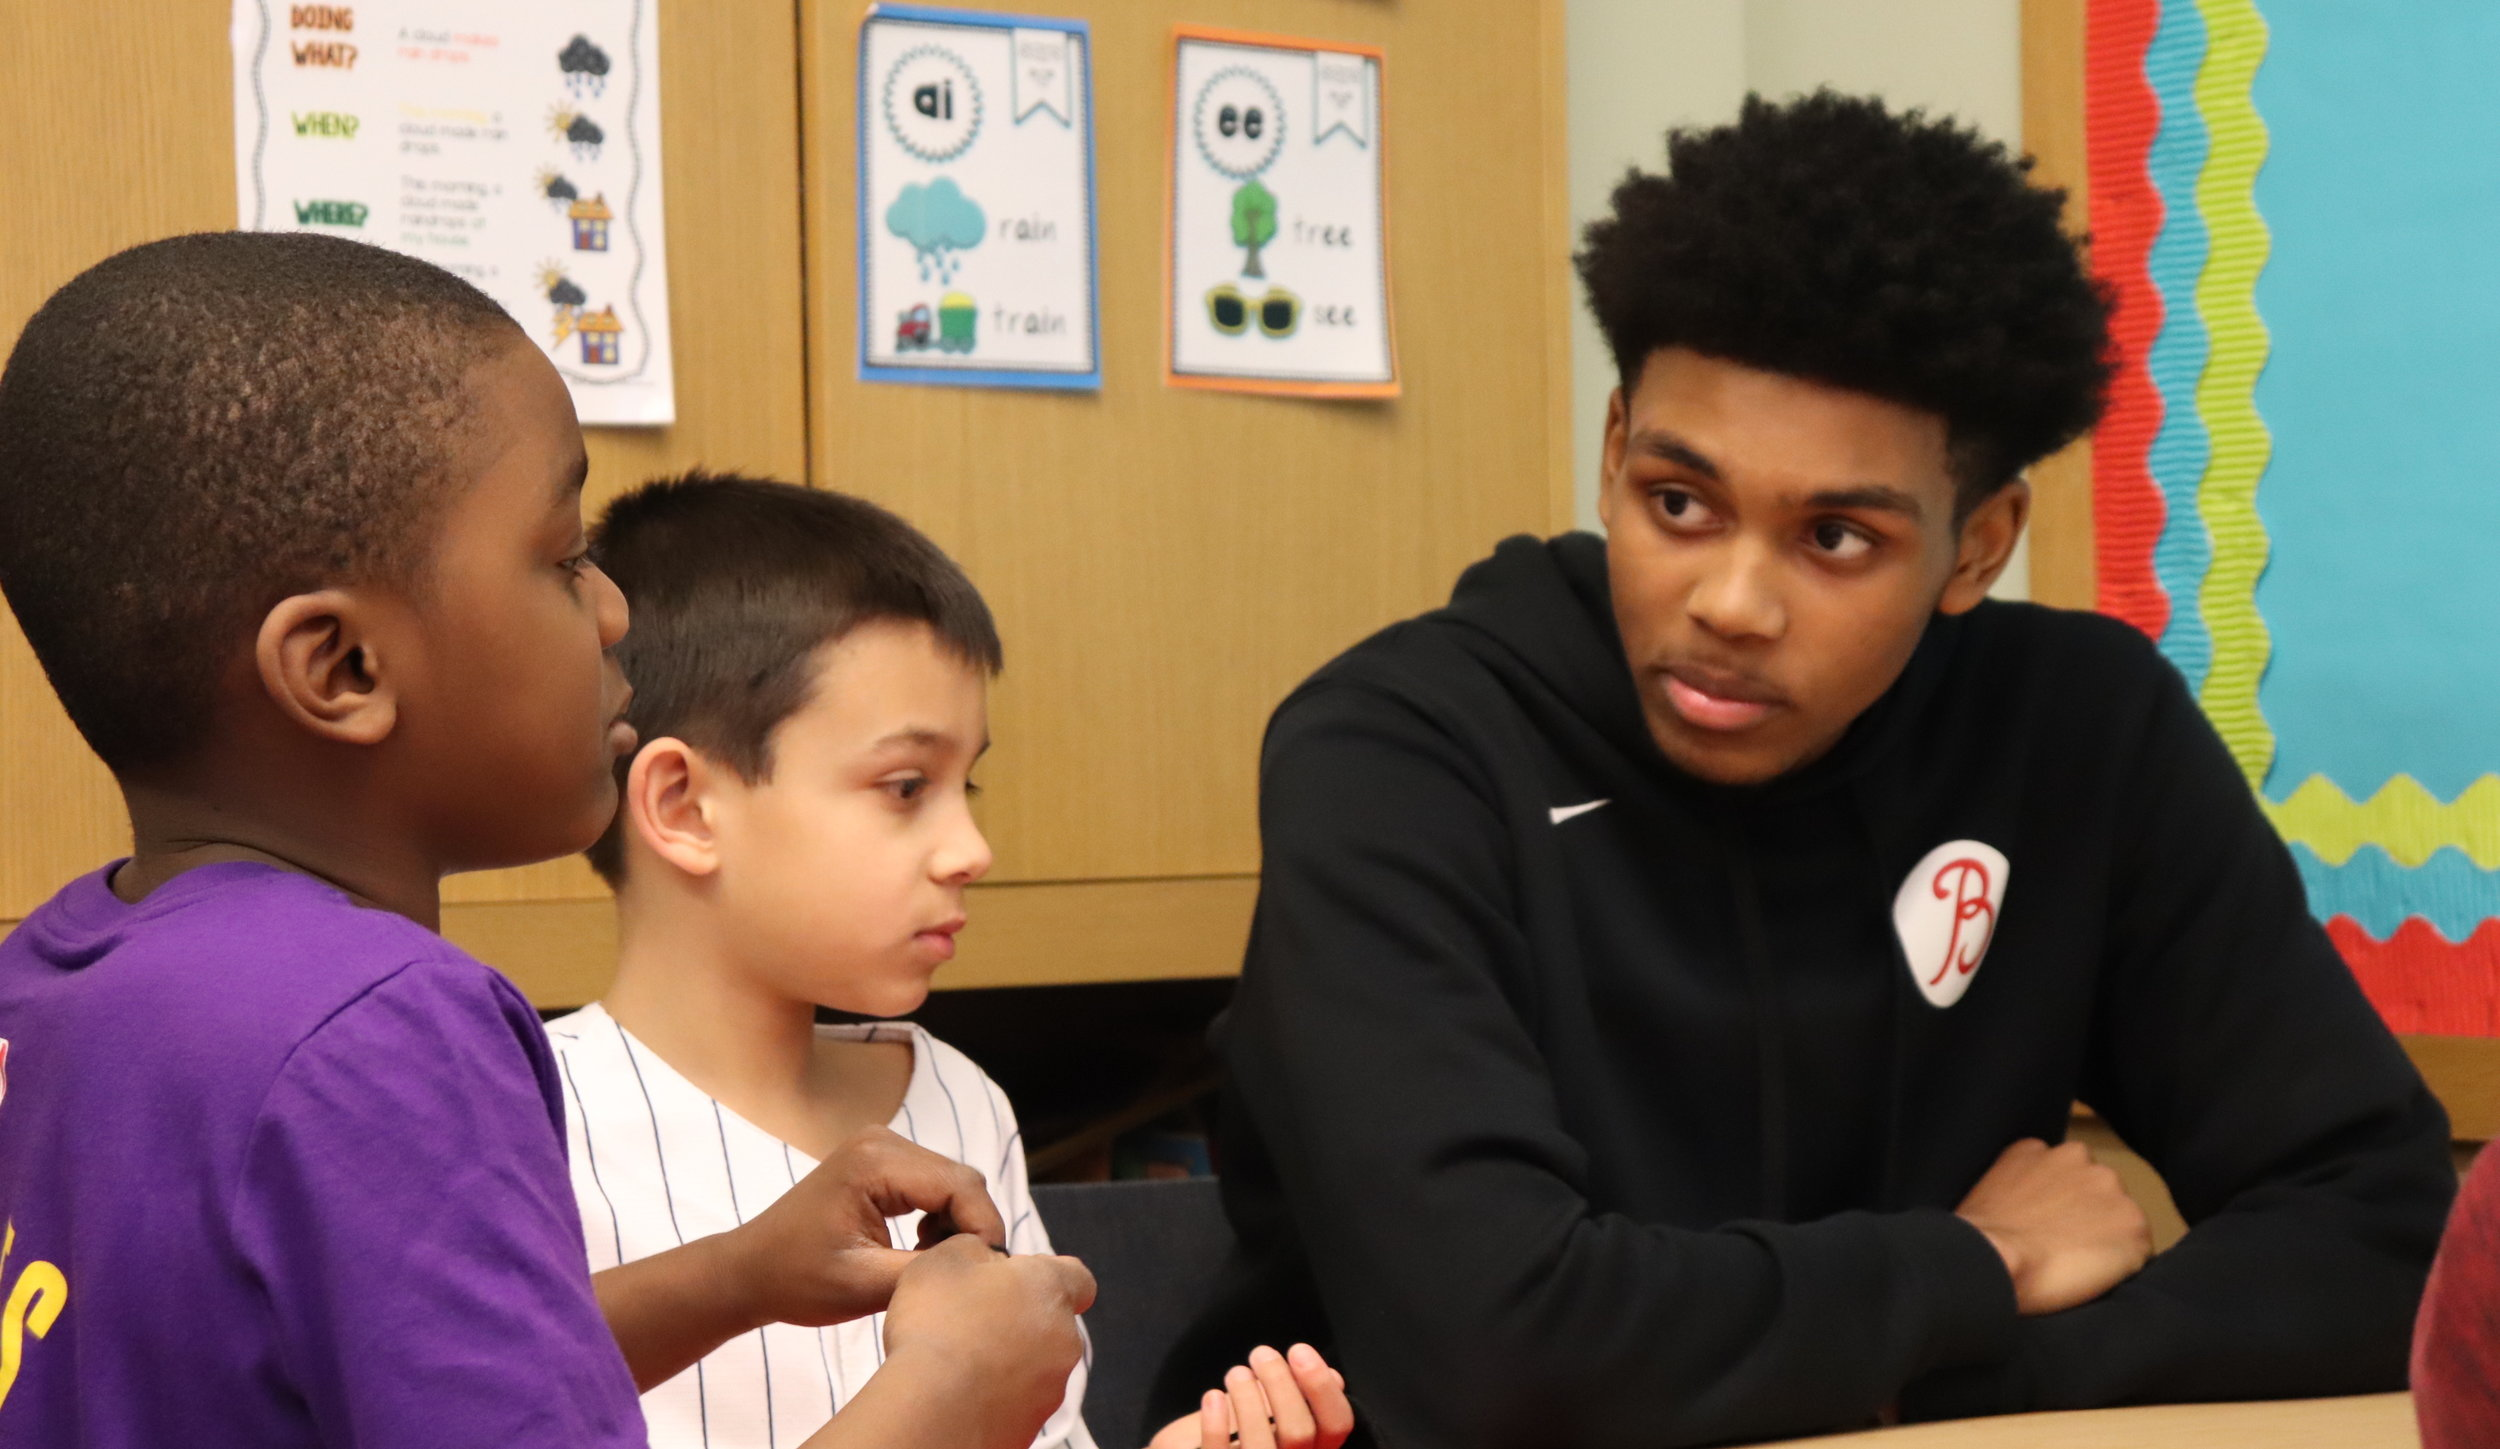 """Justin J. '19 created a Browning """"buddy"""" program that bring boys of different grades closer together though a variety of activities that include how to welcome new members of the community and what it is to be an ally."""